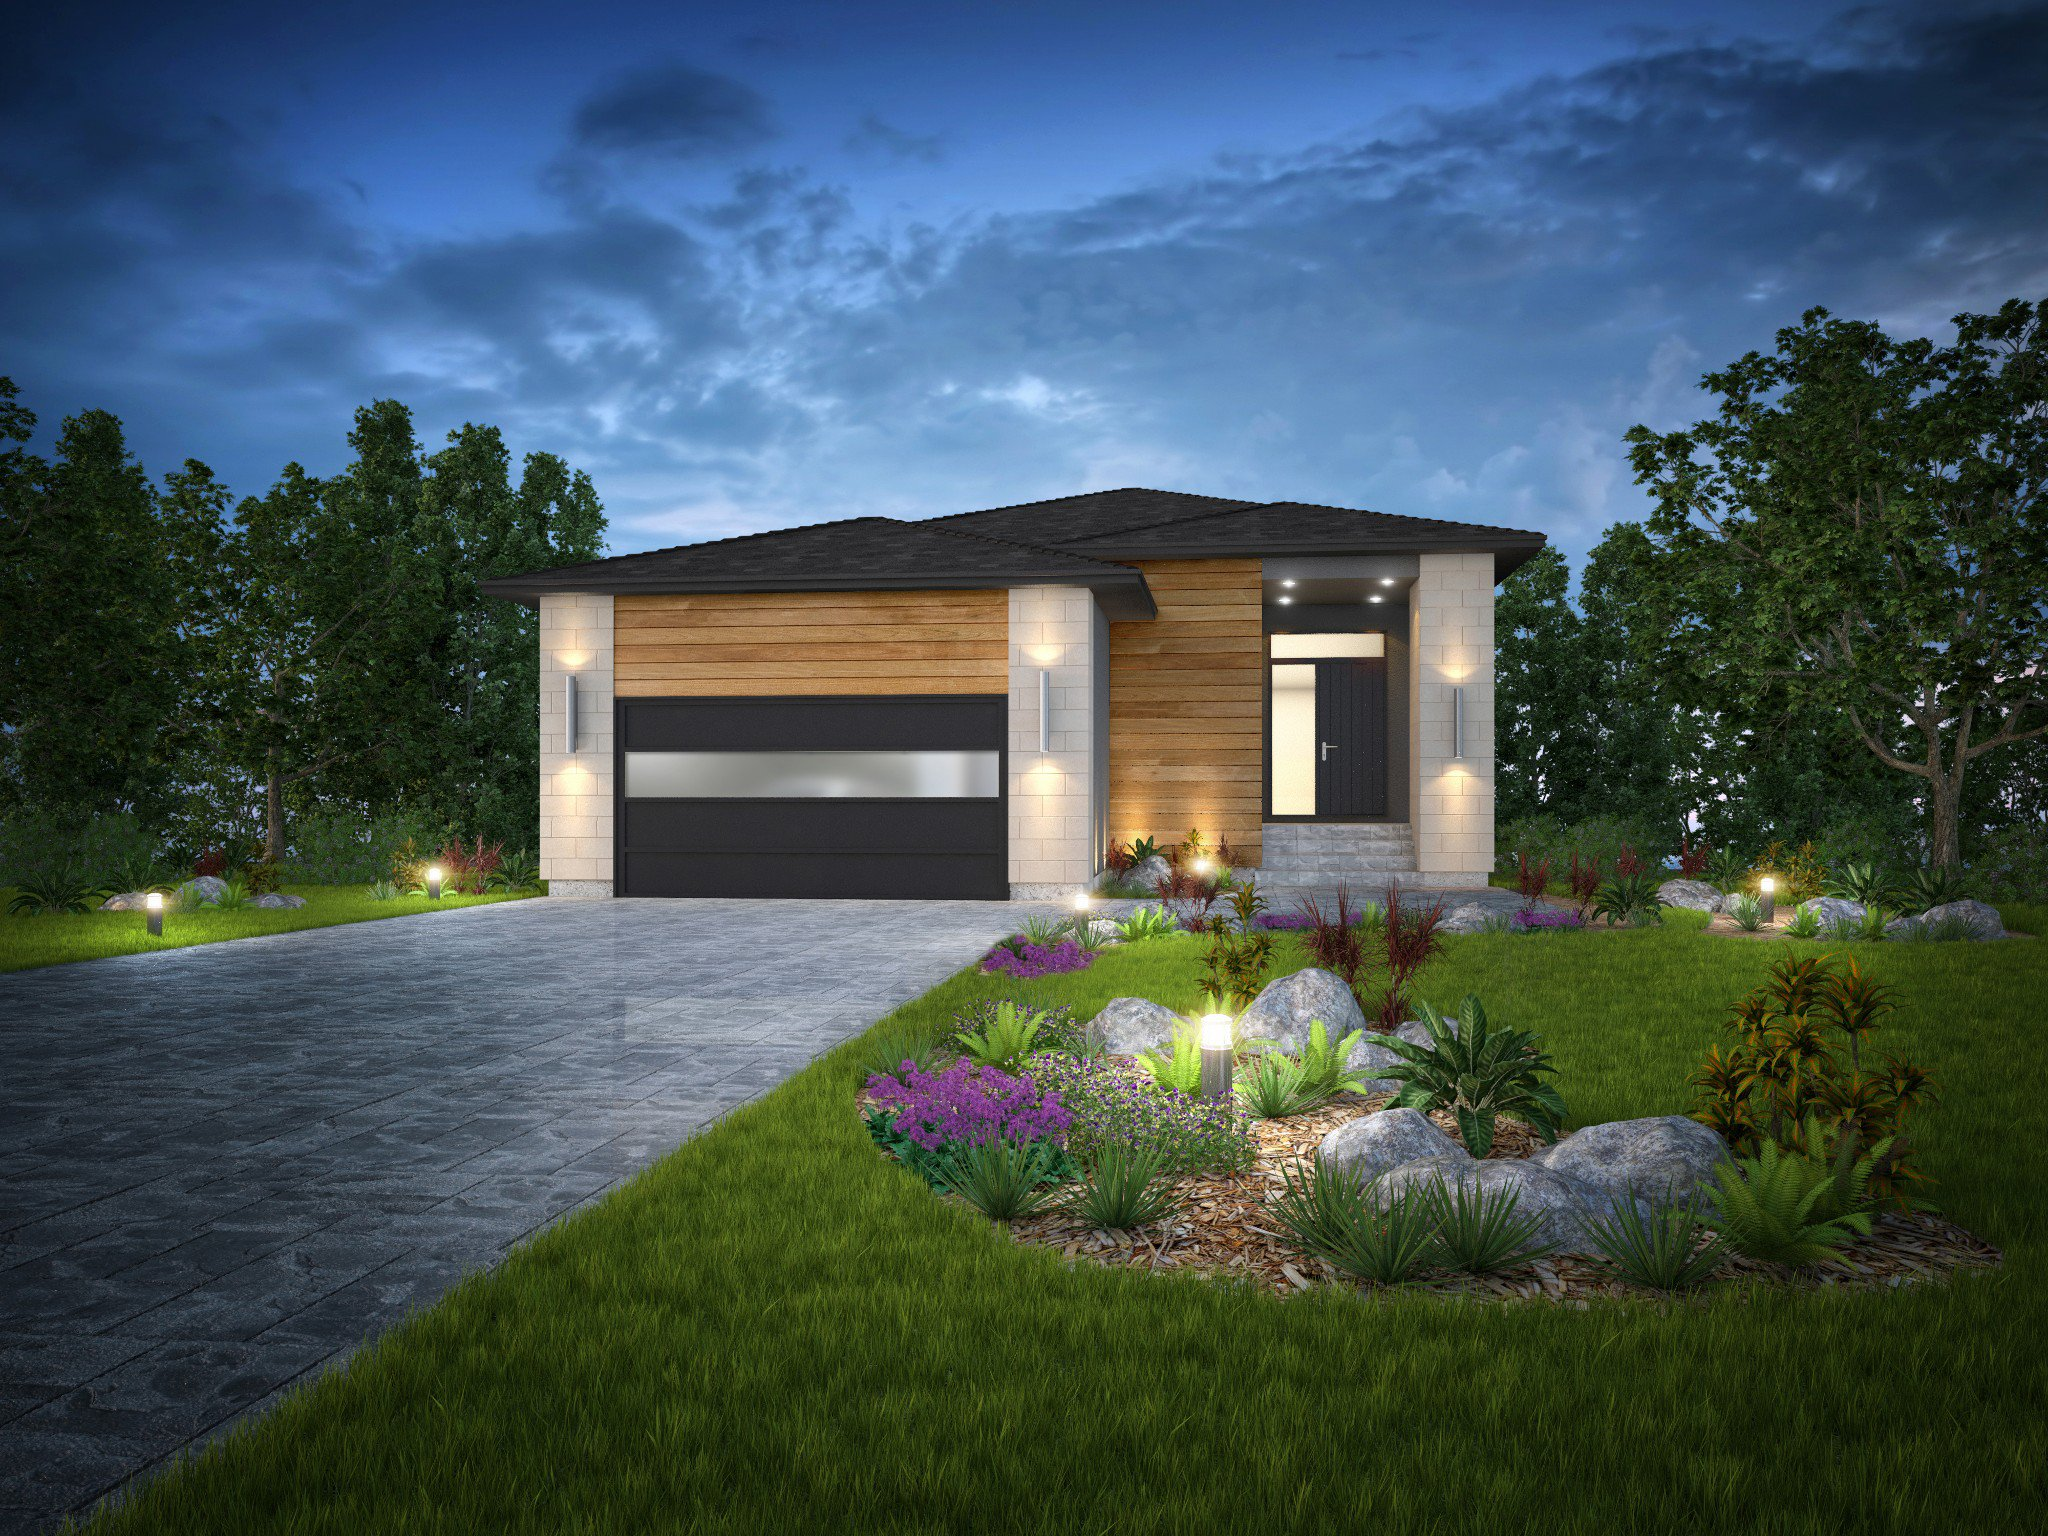 Main Photo: 54 tilstone Bay in Winnipeg: River Park South Single Family Detached for sale (2F)